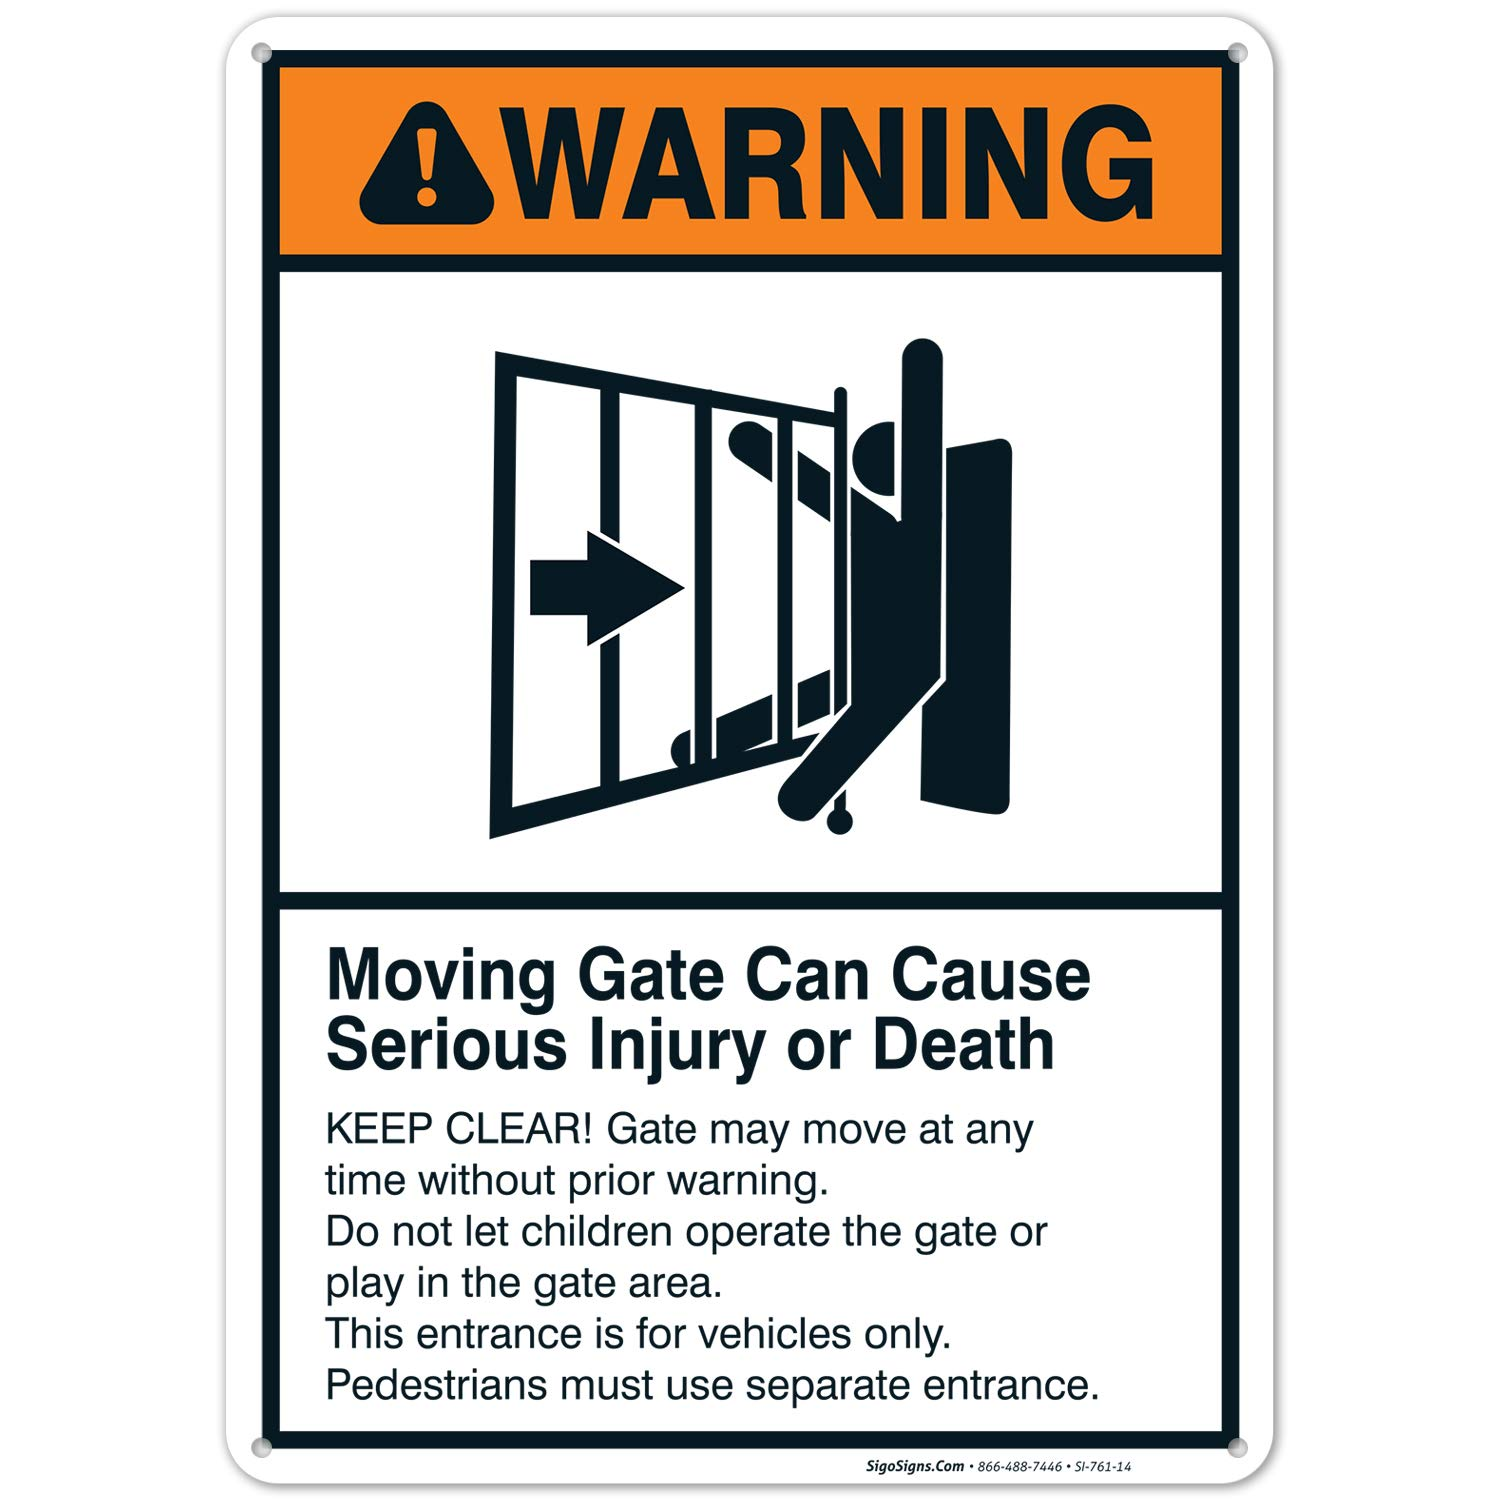 Moving Gate Sign, Moving Gate Can Cause Serious Injury or Death, 10x14 Rust Free Aluminum, Weather/Fade Resistant, Easy Mounting, Indoor/Outdoor Use, Made in USA by SIGO SIGNS